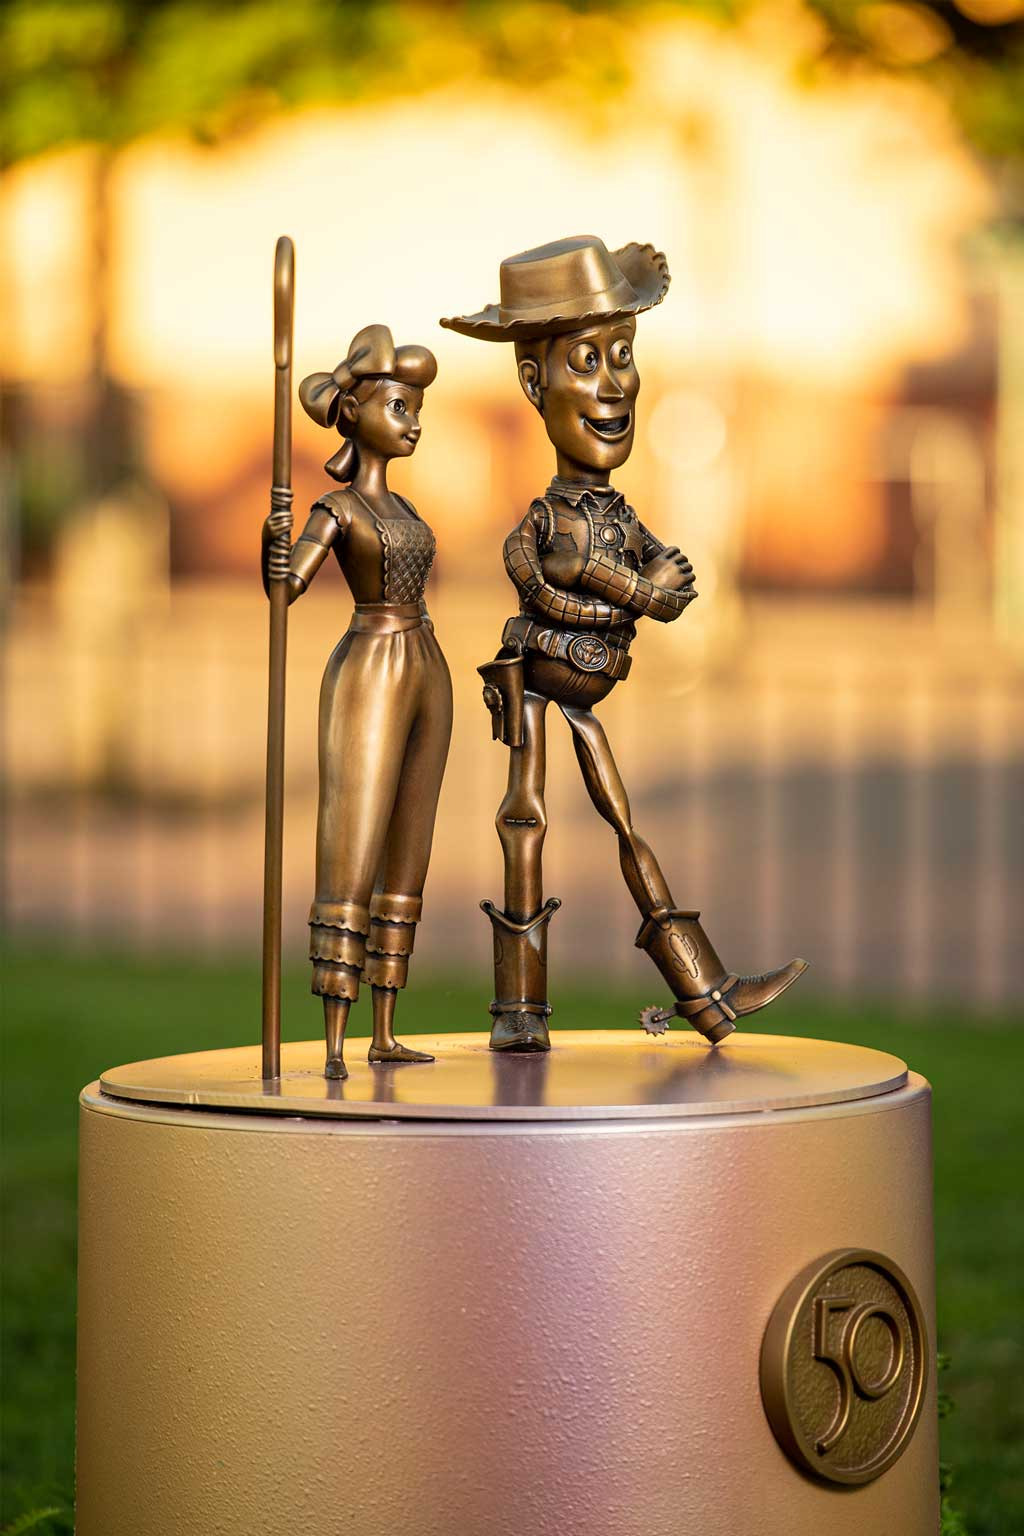 """Bo Peep and Woody at Disney's Hollywood Studios are two of the """"Disney Fab 50 Character Collection"""" appearing in all four Walt Disney World Resort theme parks in Lake Buena Vista, Fla., as part of """"The World's Most Magical Celebration,"""" beginning Oct. 1, 2021, in honor of the resort's 50th anniversary. (David Roark, photographer)"""